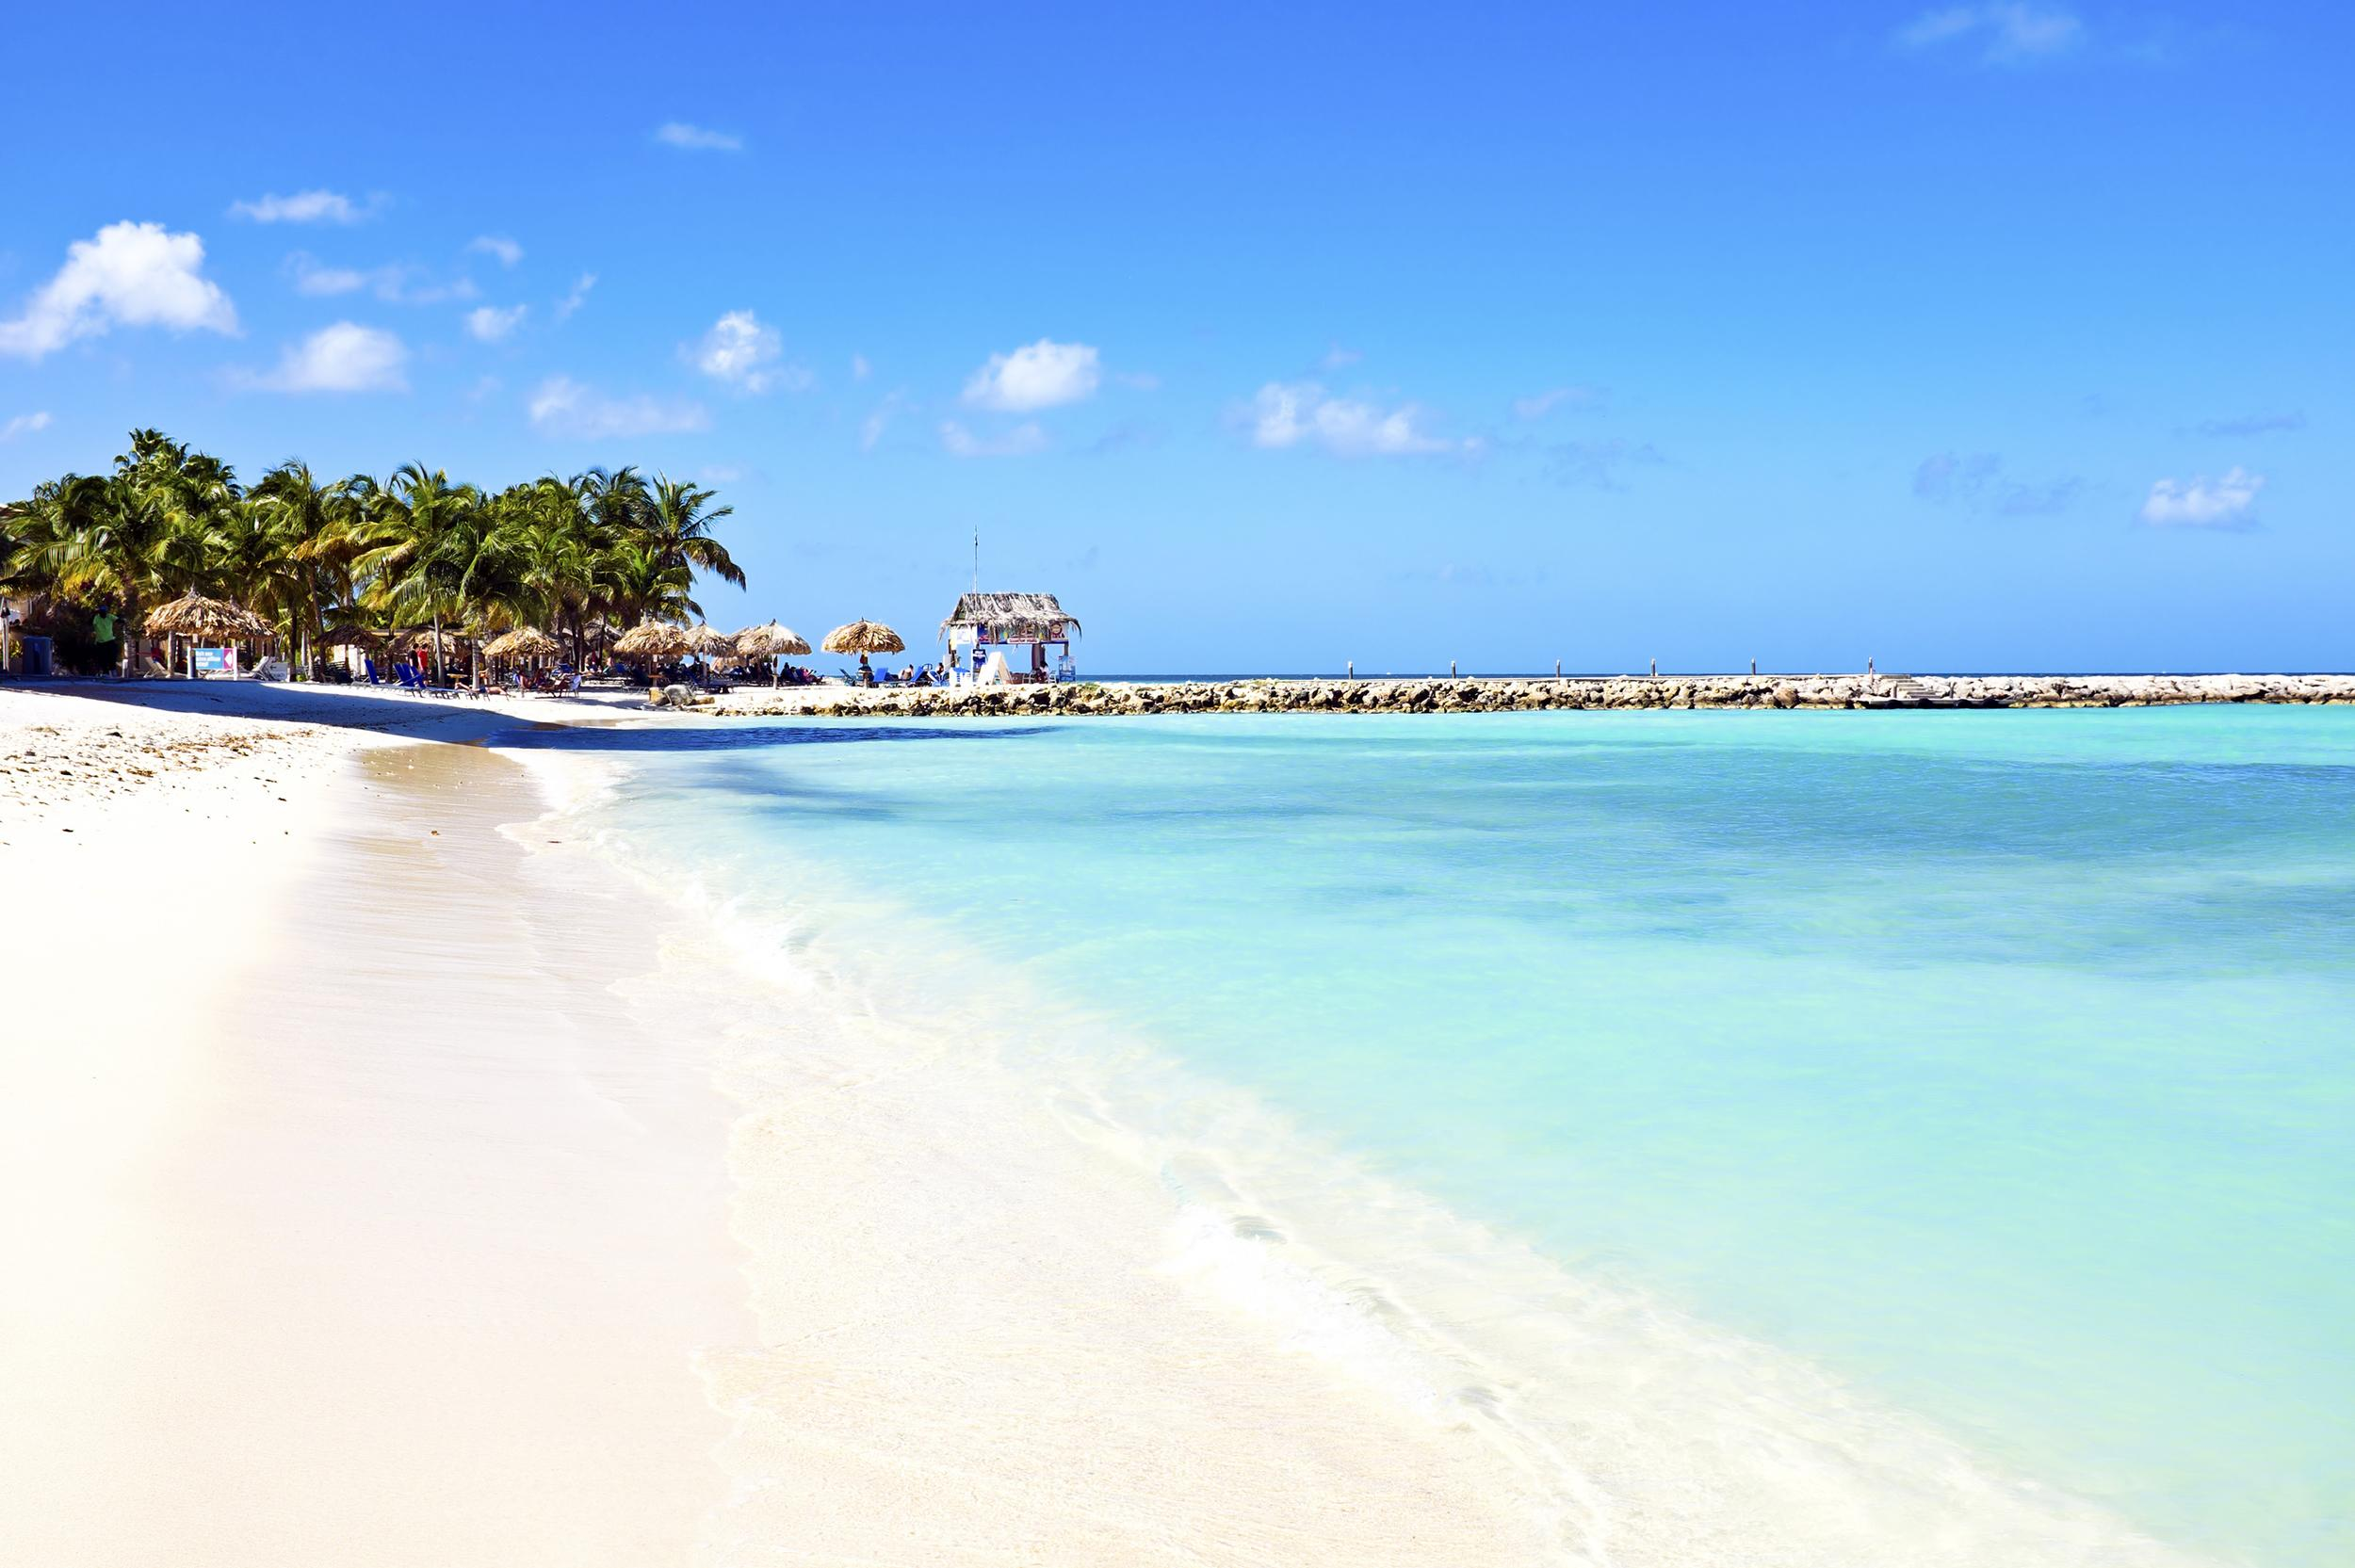 """<a href=""""http://www.thomson.co.uk/flights/destinations/caribbean/aruba-island/aruba/aruba-flights.html"""" target=""""_blank"""">Thomson Airways</a> will fly from Manchester to Aruba from 2 May to 24 October in 2016. The direct summer flight on Mondays will cost from £749 return. The Caribbean island boasts amazing beaches, contrasting landscapes, friendly people, a colourful underwater world and delicious food. Sitting just outside the hurricane belt, Aruba is at the very south of the Caribbean Sea, less than 20 miles from the Venezuela coast."""